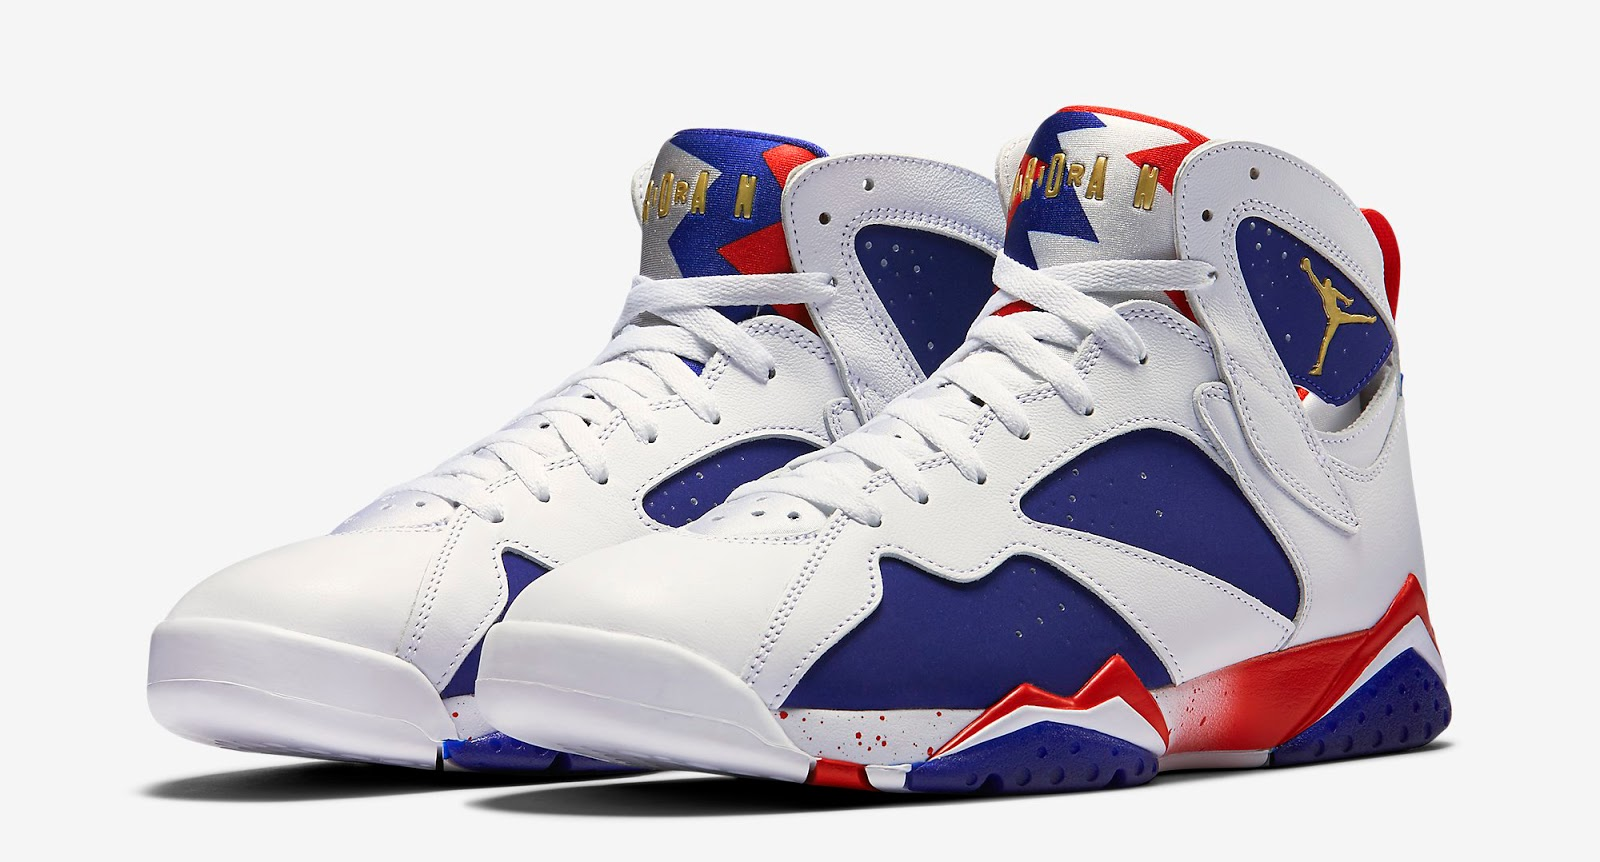 f49f1bfae5a2 ajordanxi Your  1 Source For Sneaker Release Dates  Air Jordan 7 Retro